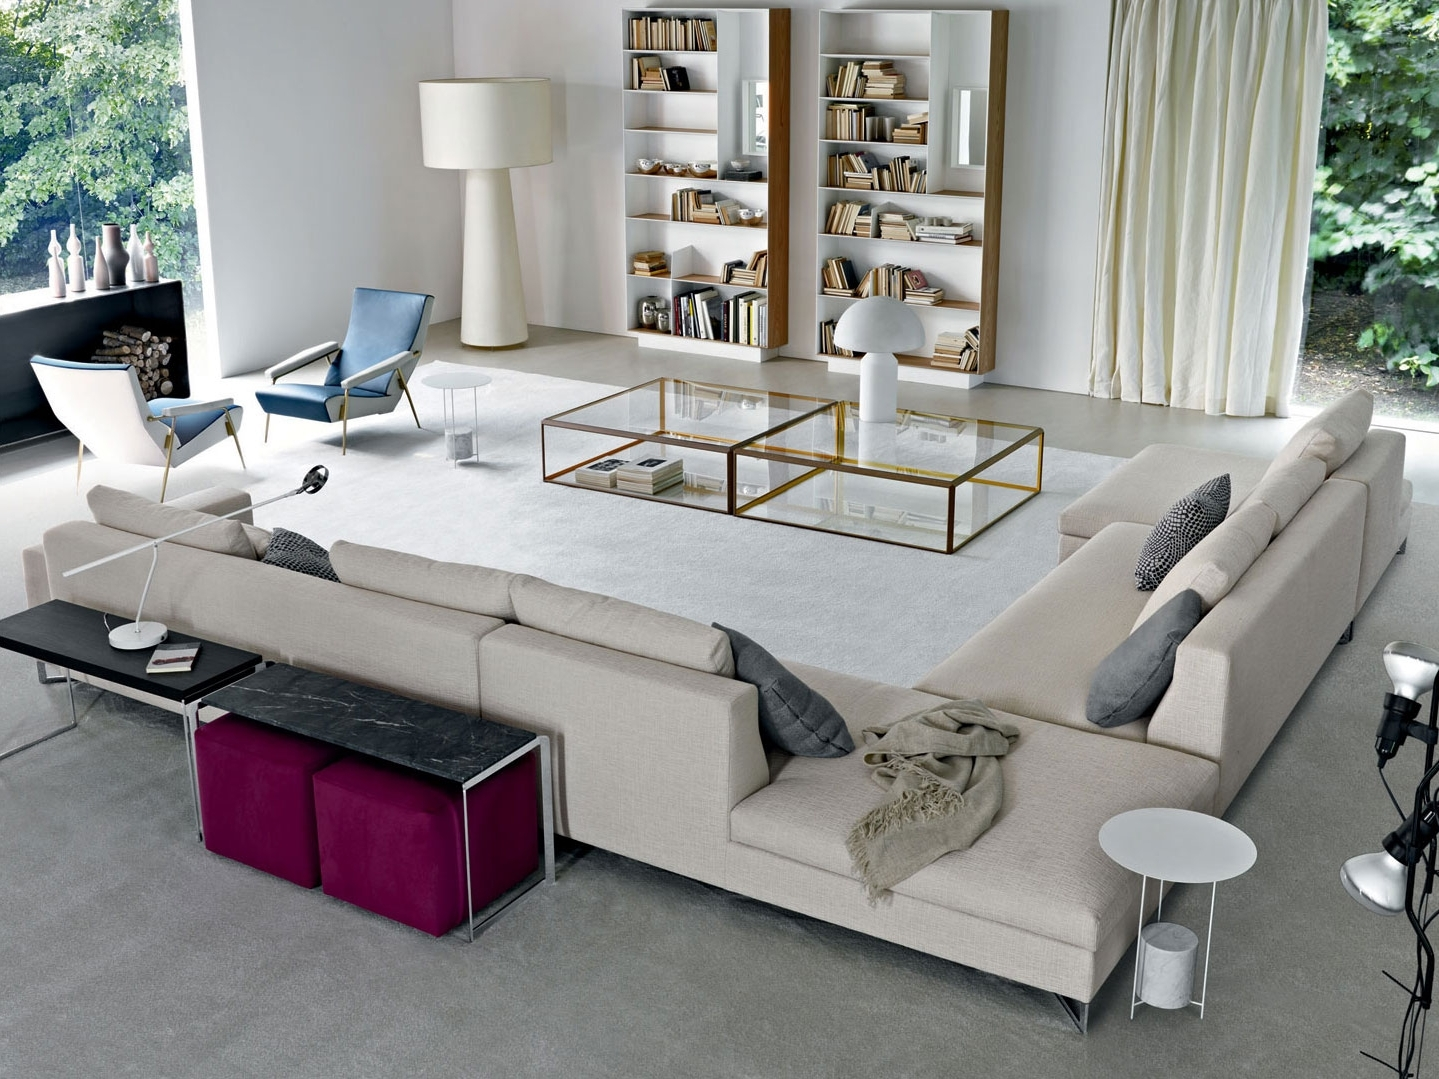 Large Sectional Sofas With Regard To Preferred Sofa : Sectional Sofa With Oversized Ottoman Oversized Microfiber (View 14 of 15)